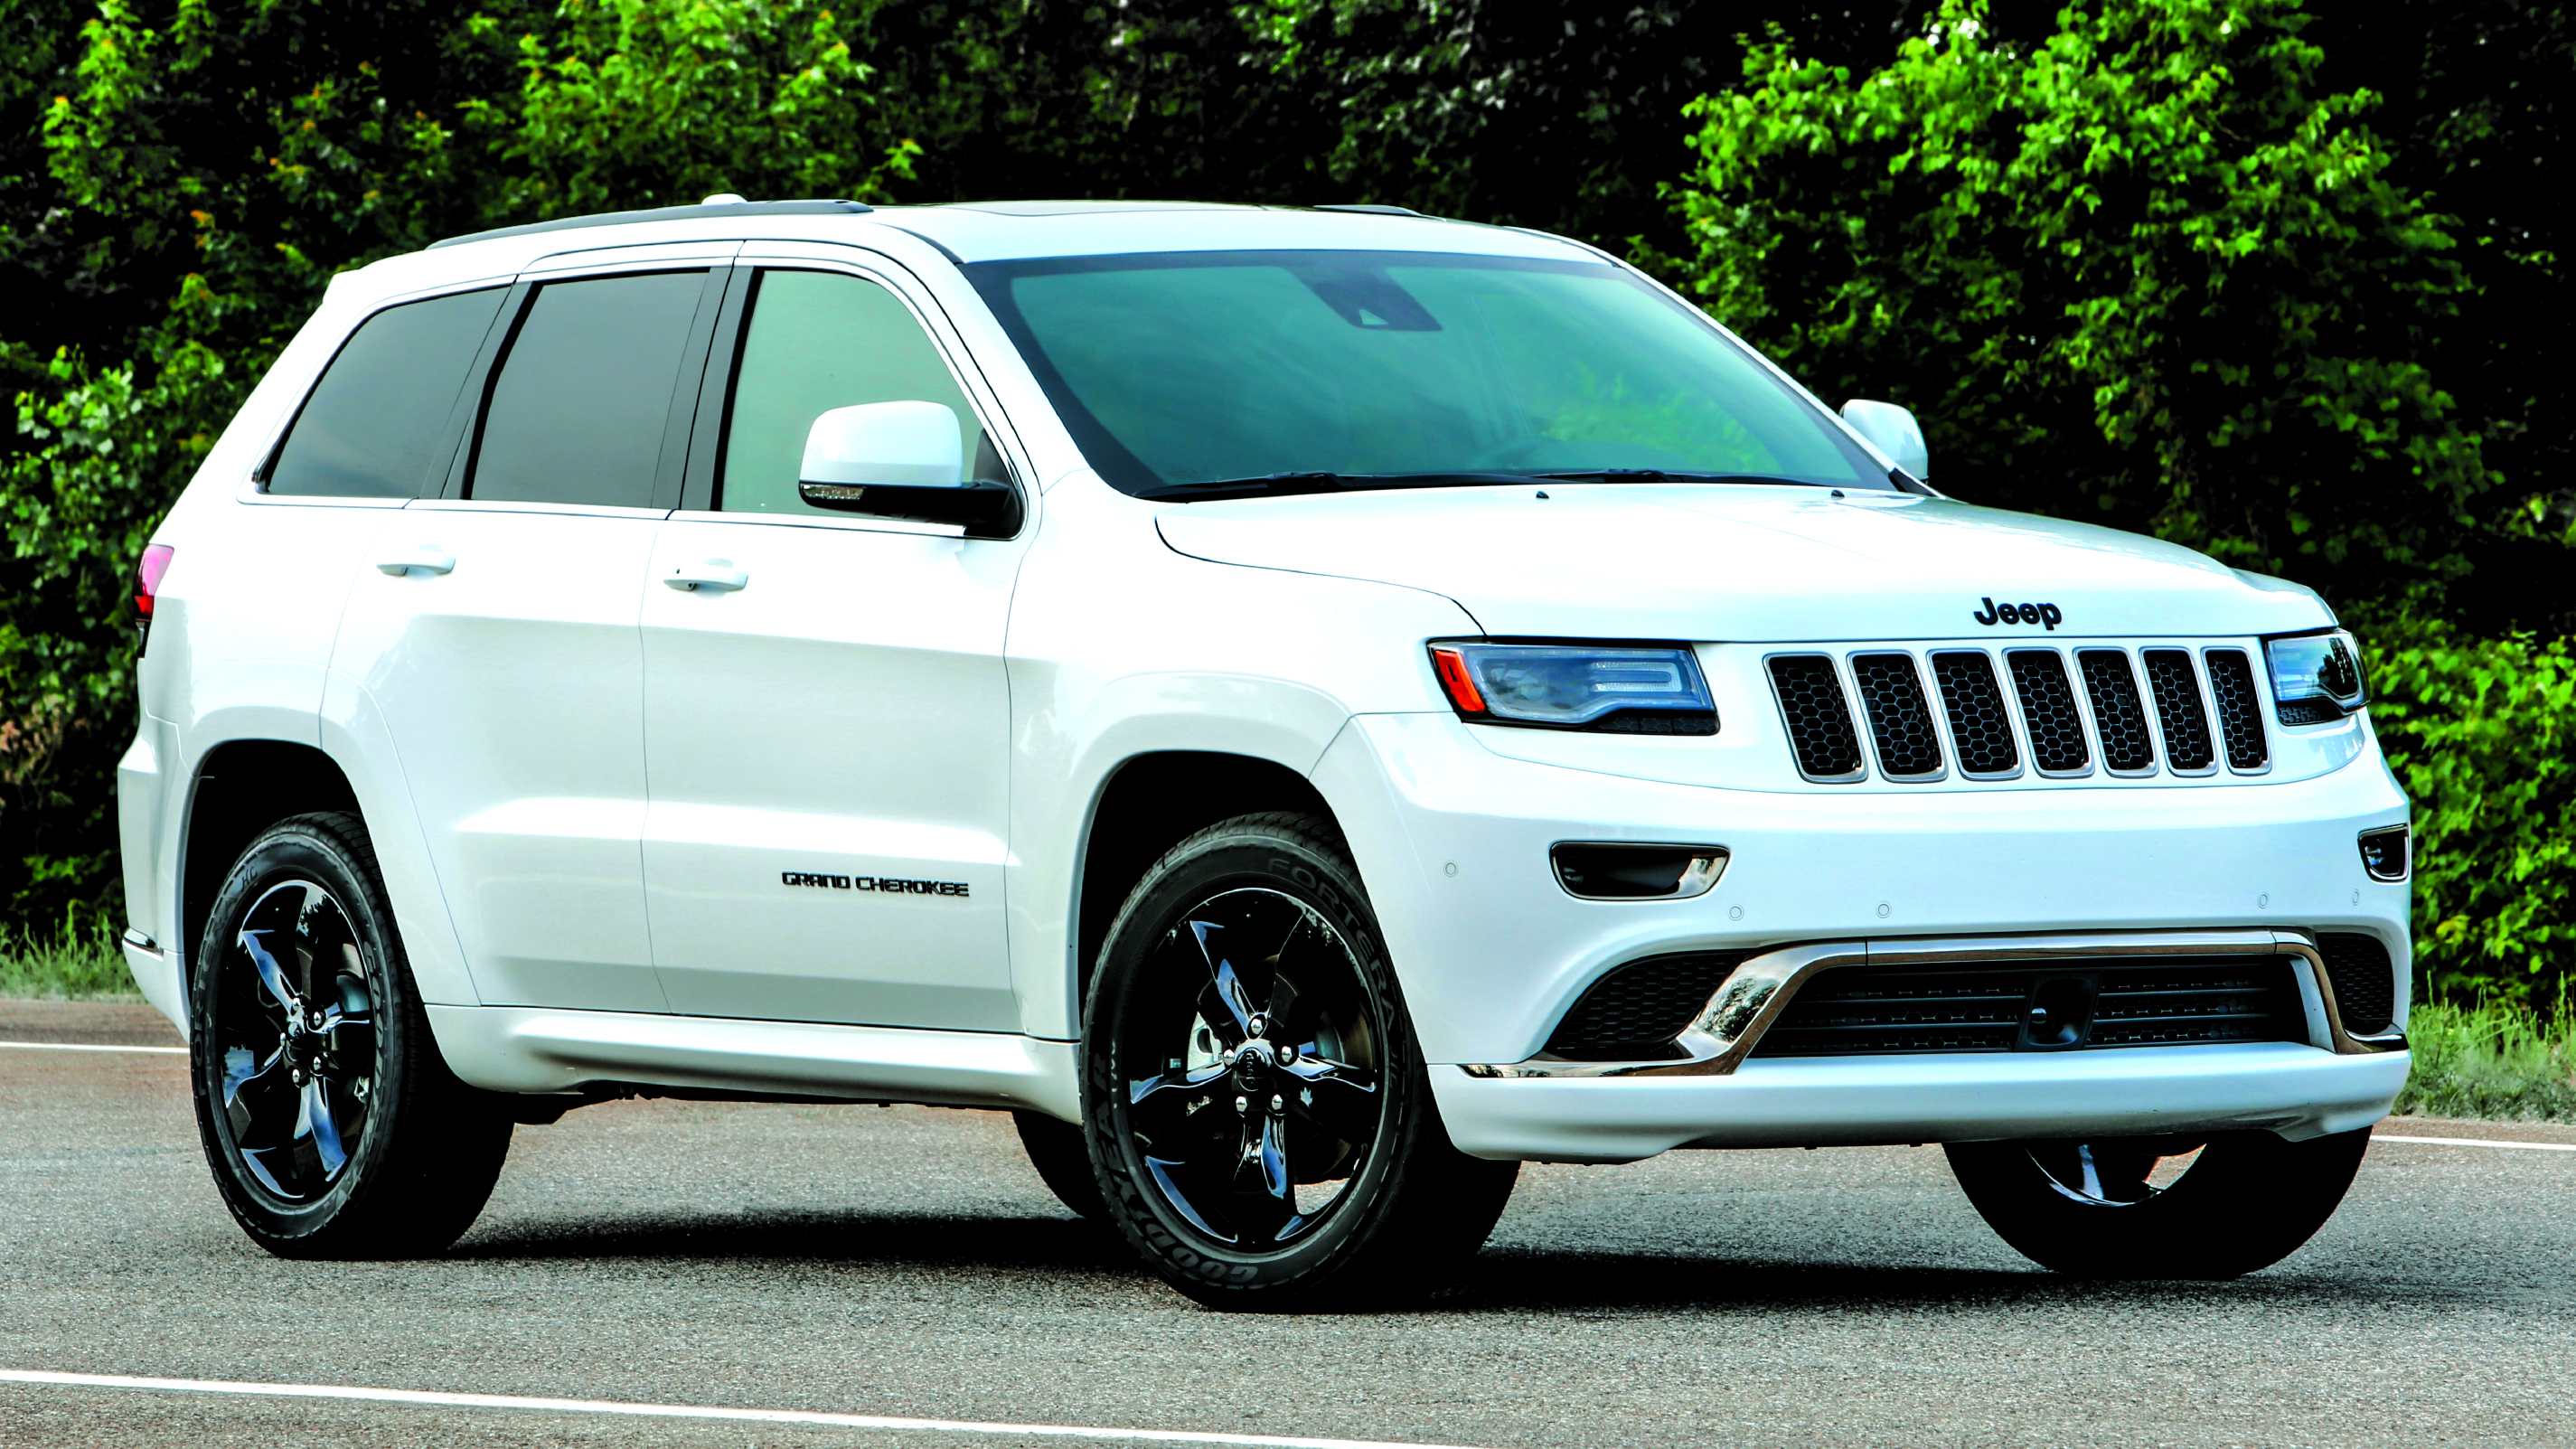 The 2016 Jeep Grand Cherokee Delivered Consumers An Unprecedented  Combination Of Best In Class Fuel Economy And Driving Range, A Choice Of  Leading ...